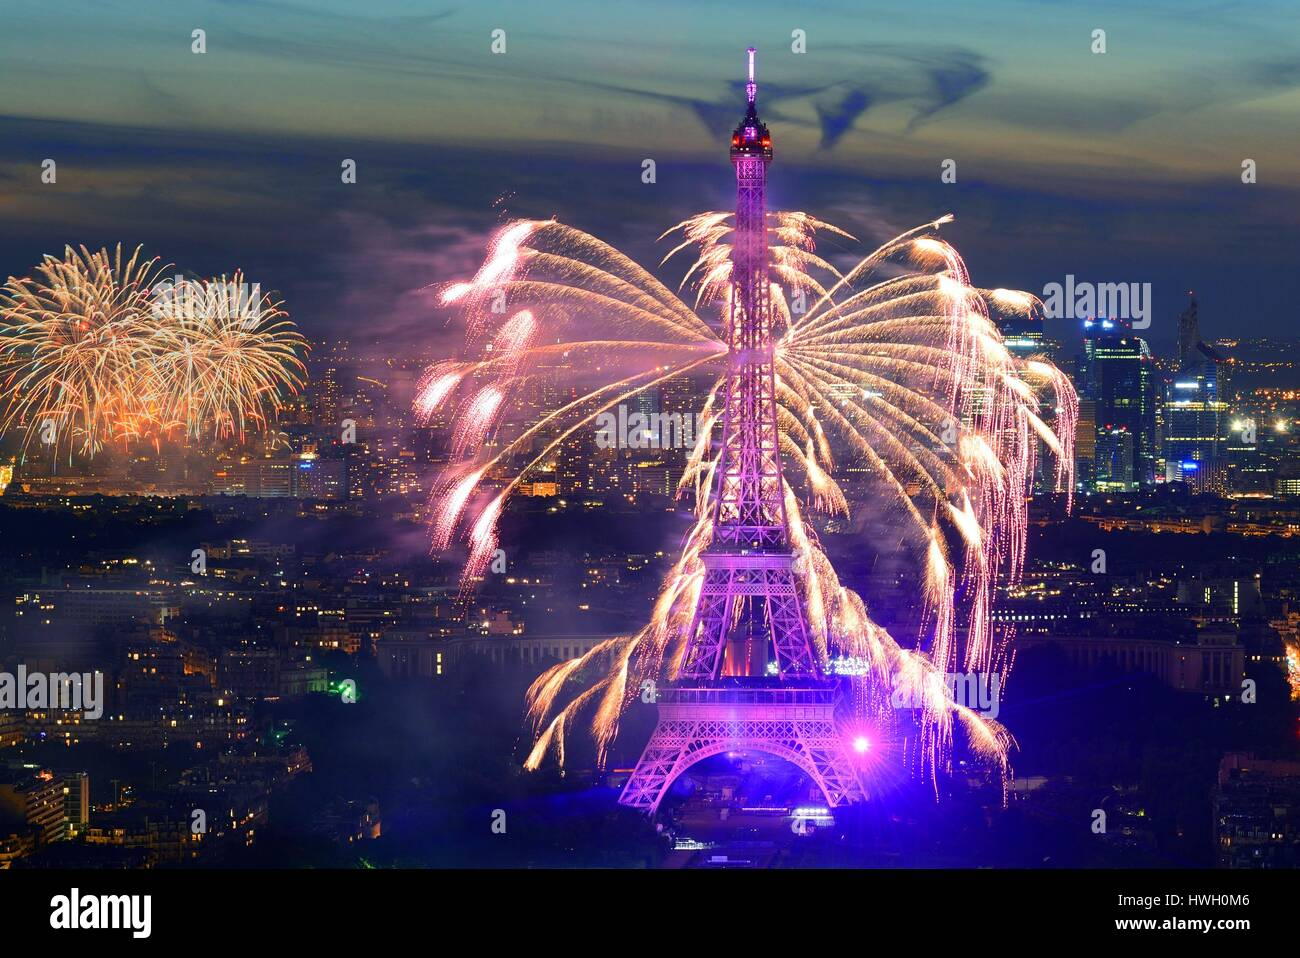 france, paris, the eiffel tower and the fireworks of the national